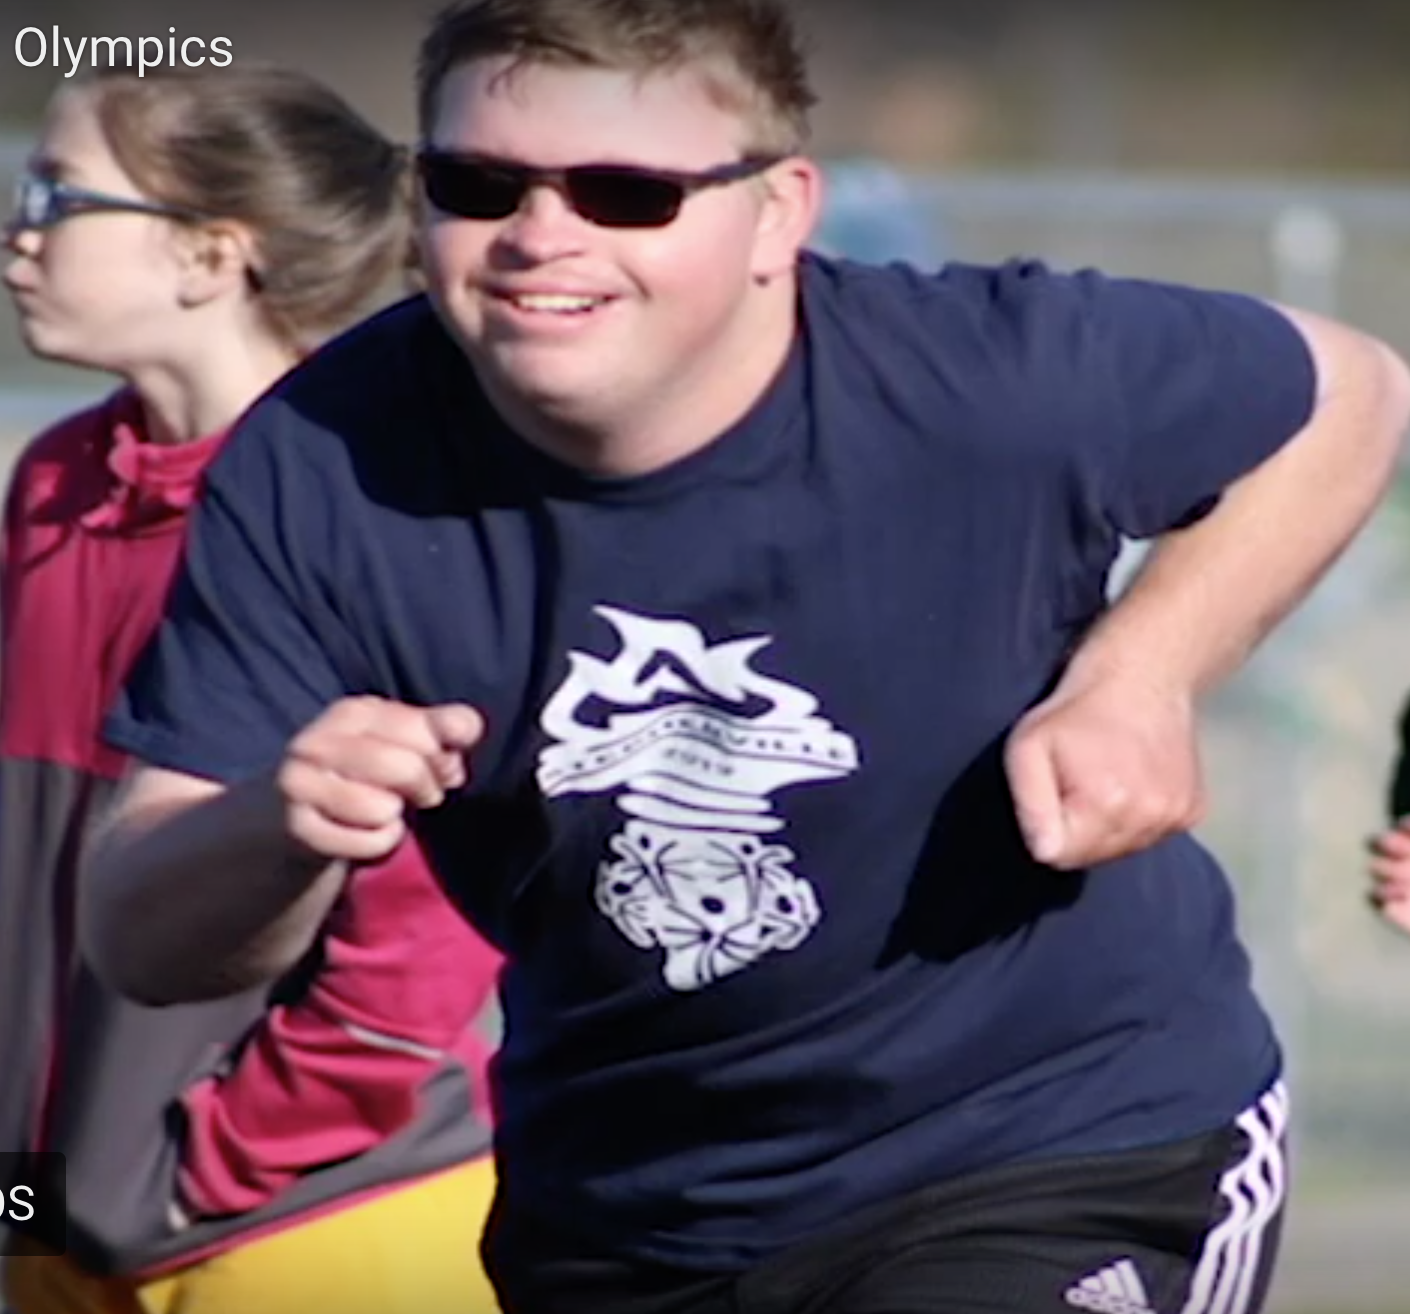 Video: Students participate in Special Olympics